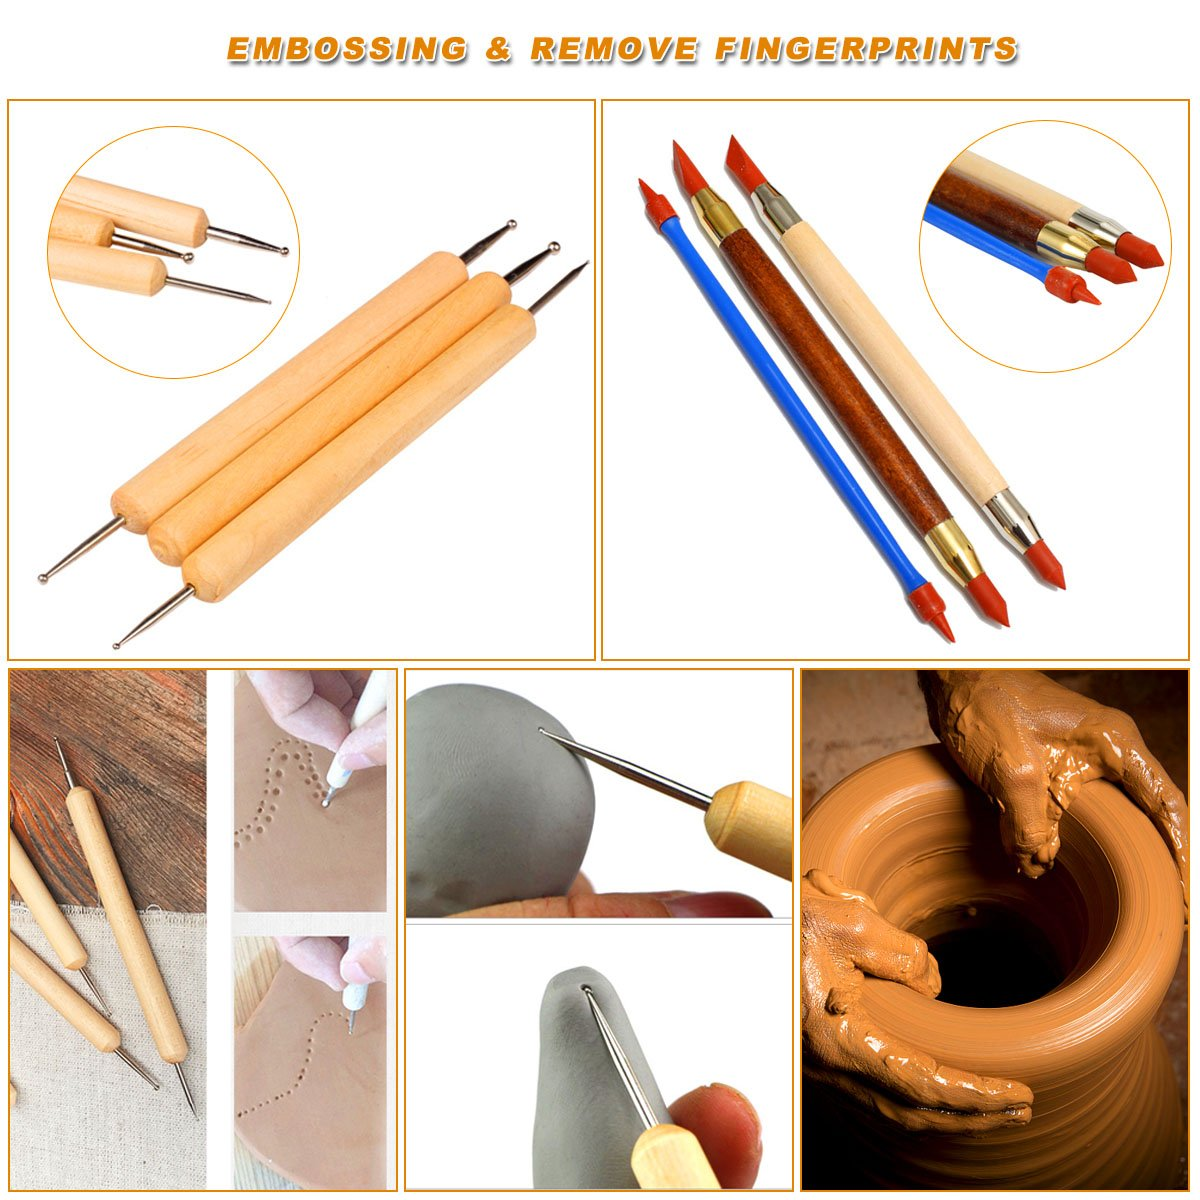 Hotab 45pcs Set Wooden Pottery & Clay Sculpting Tools with Plastic Case by Hotab (Image #2)